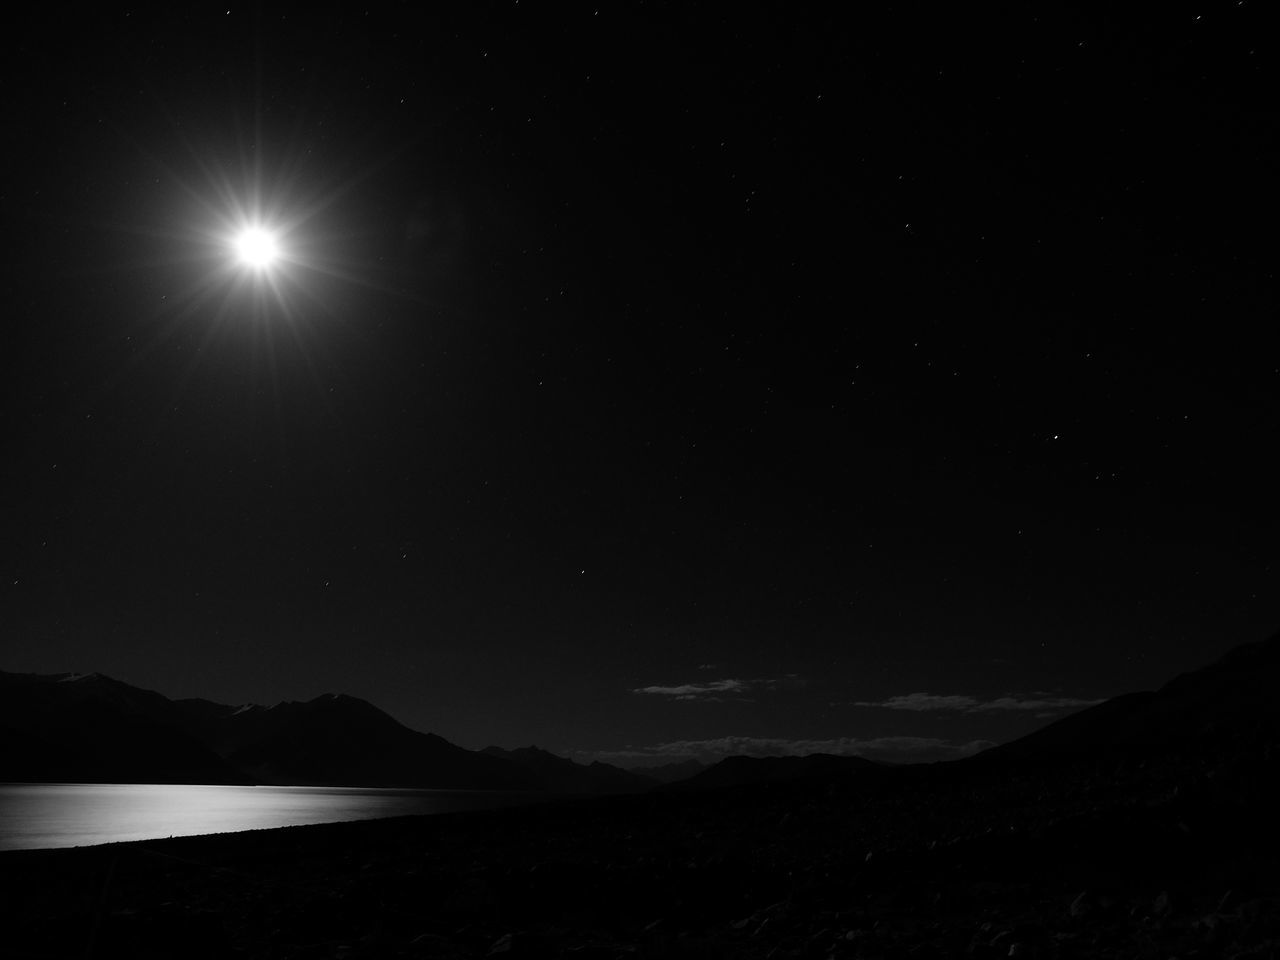 Astronomy Black And White Jammu And Kashmir Landscape Leh Ladakh Moon Nature Night No People Outdoors Pangong Lake Pangong Tso Scenics Sky Space Star - Space